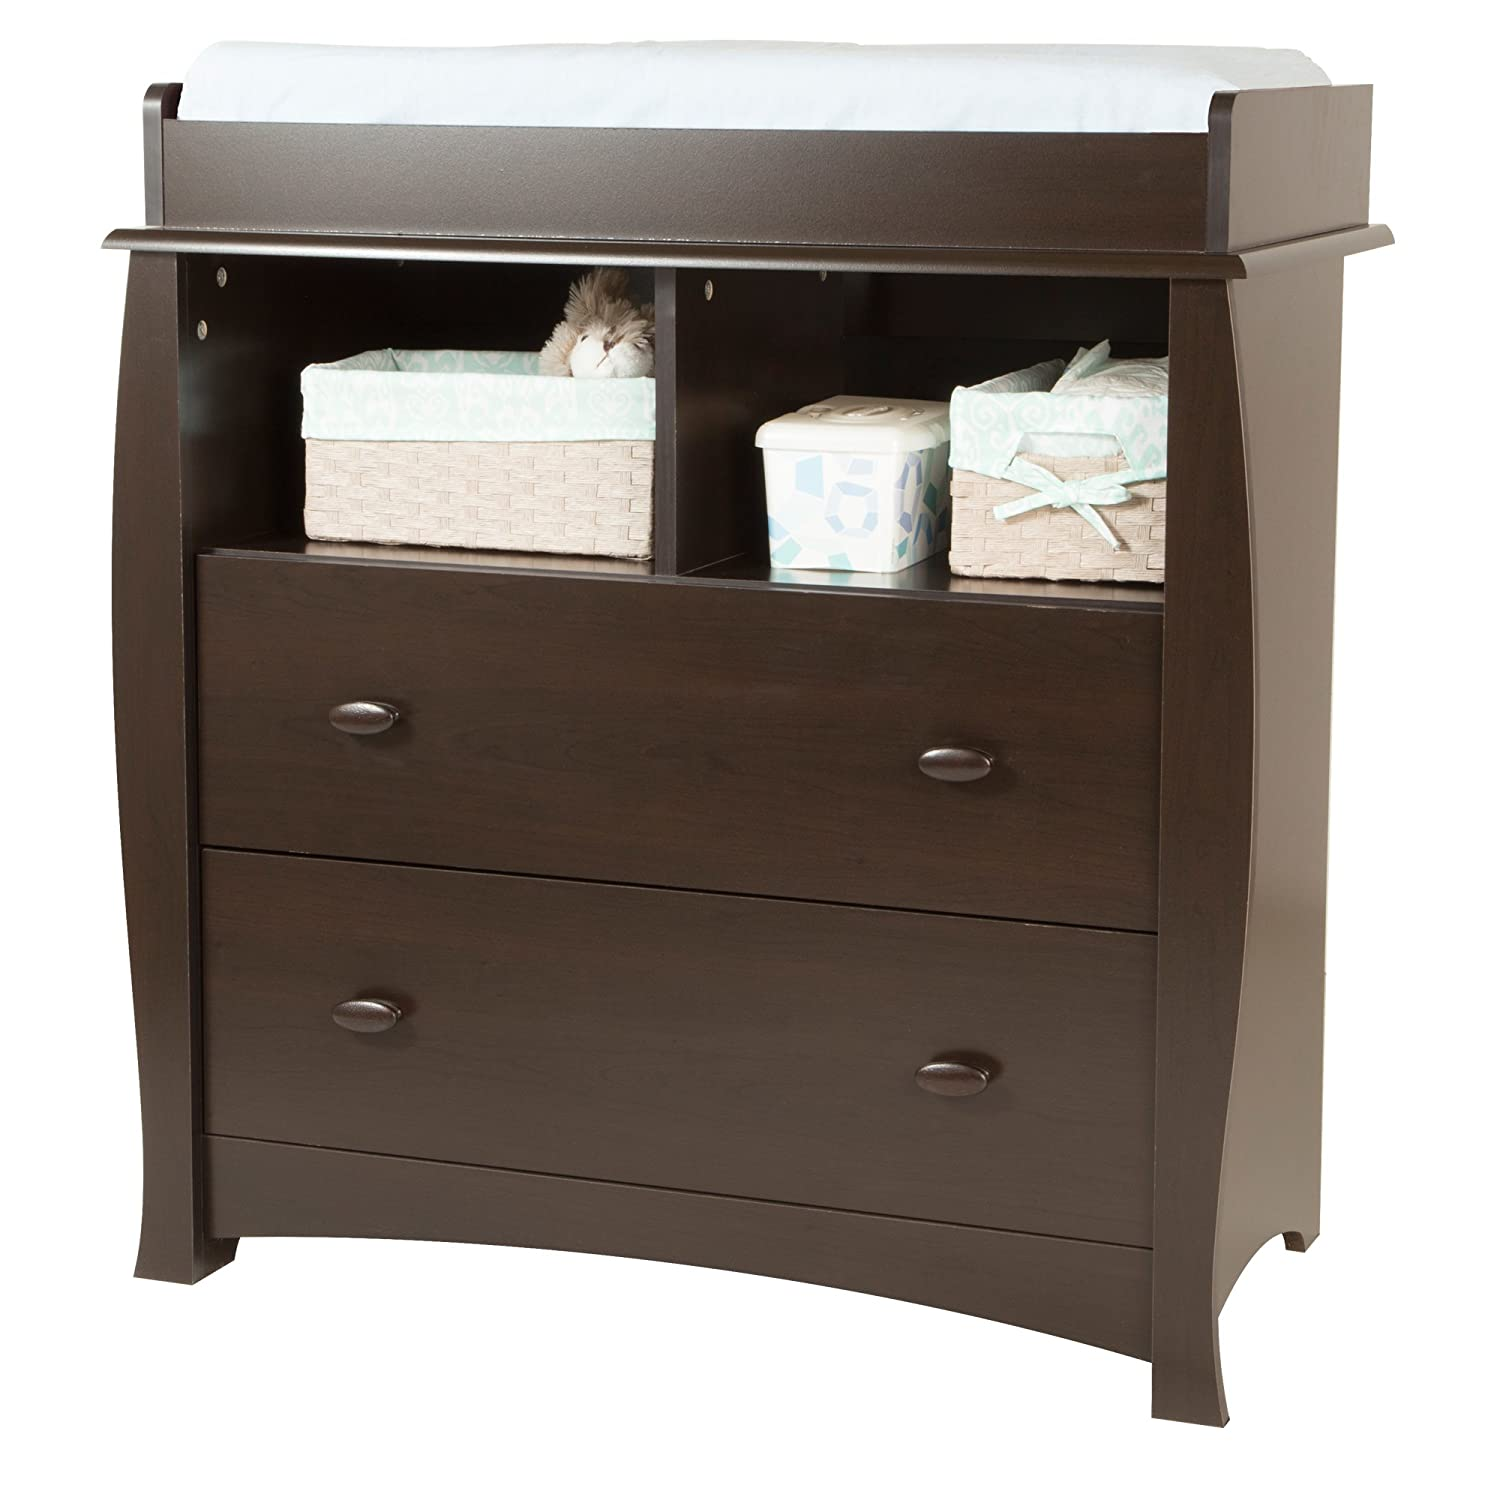 south shore dresser table ip soft changing canada en walmart cuddly gray